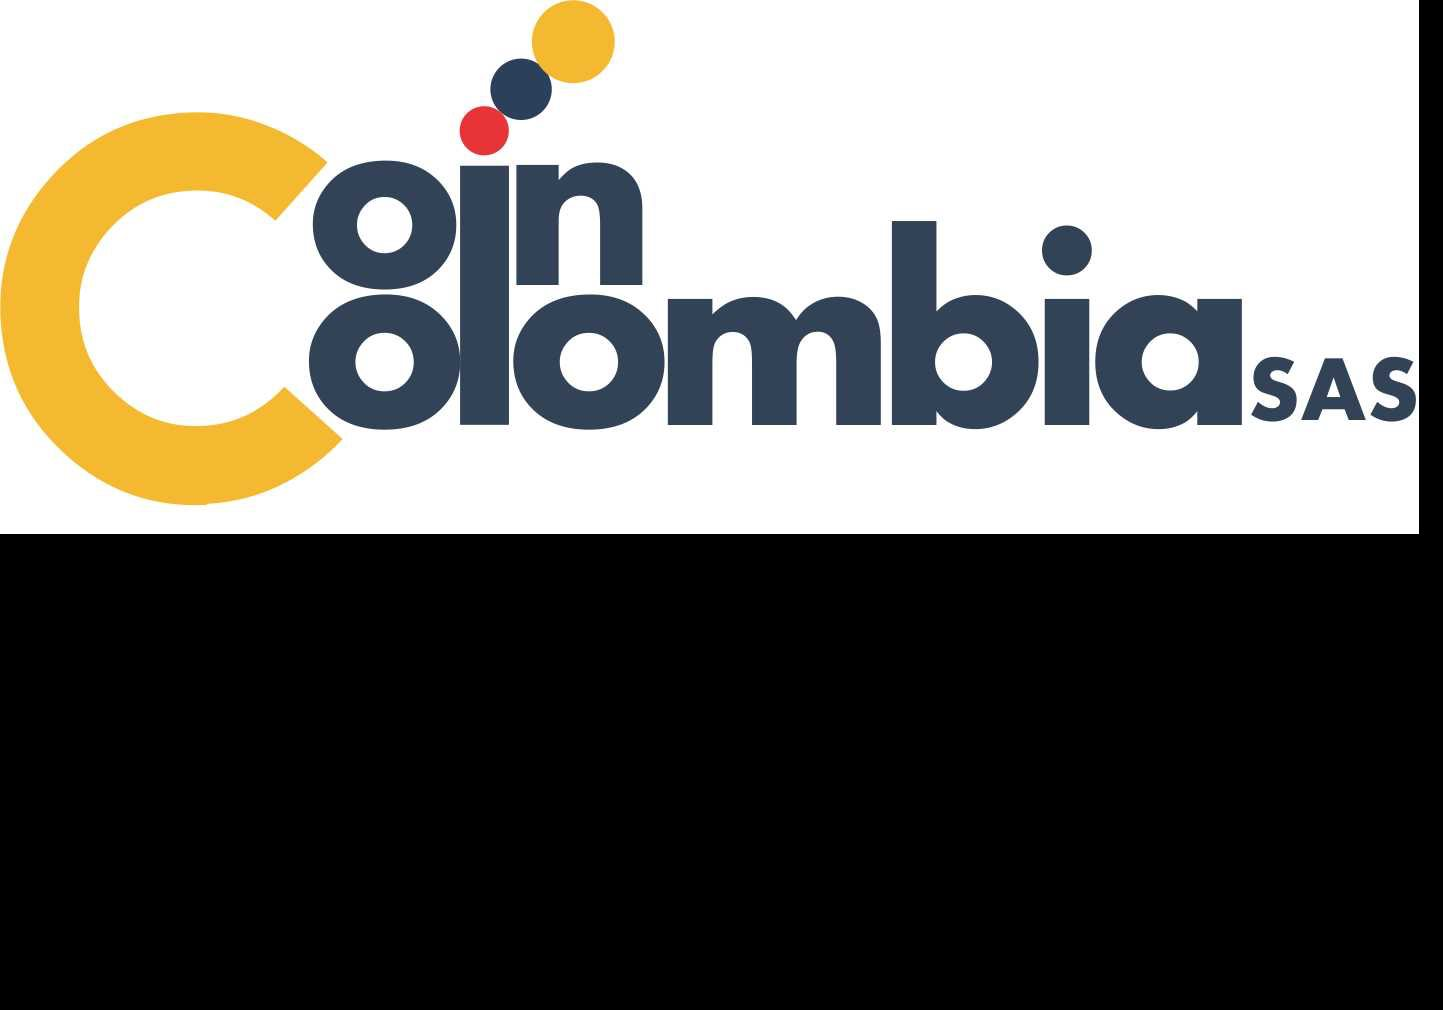 COINCOLOMBIA